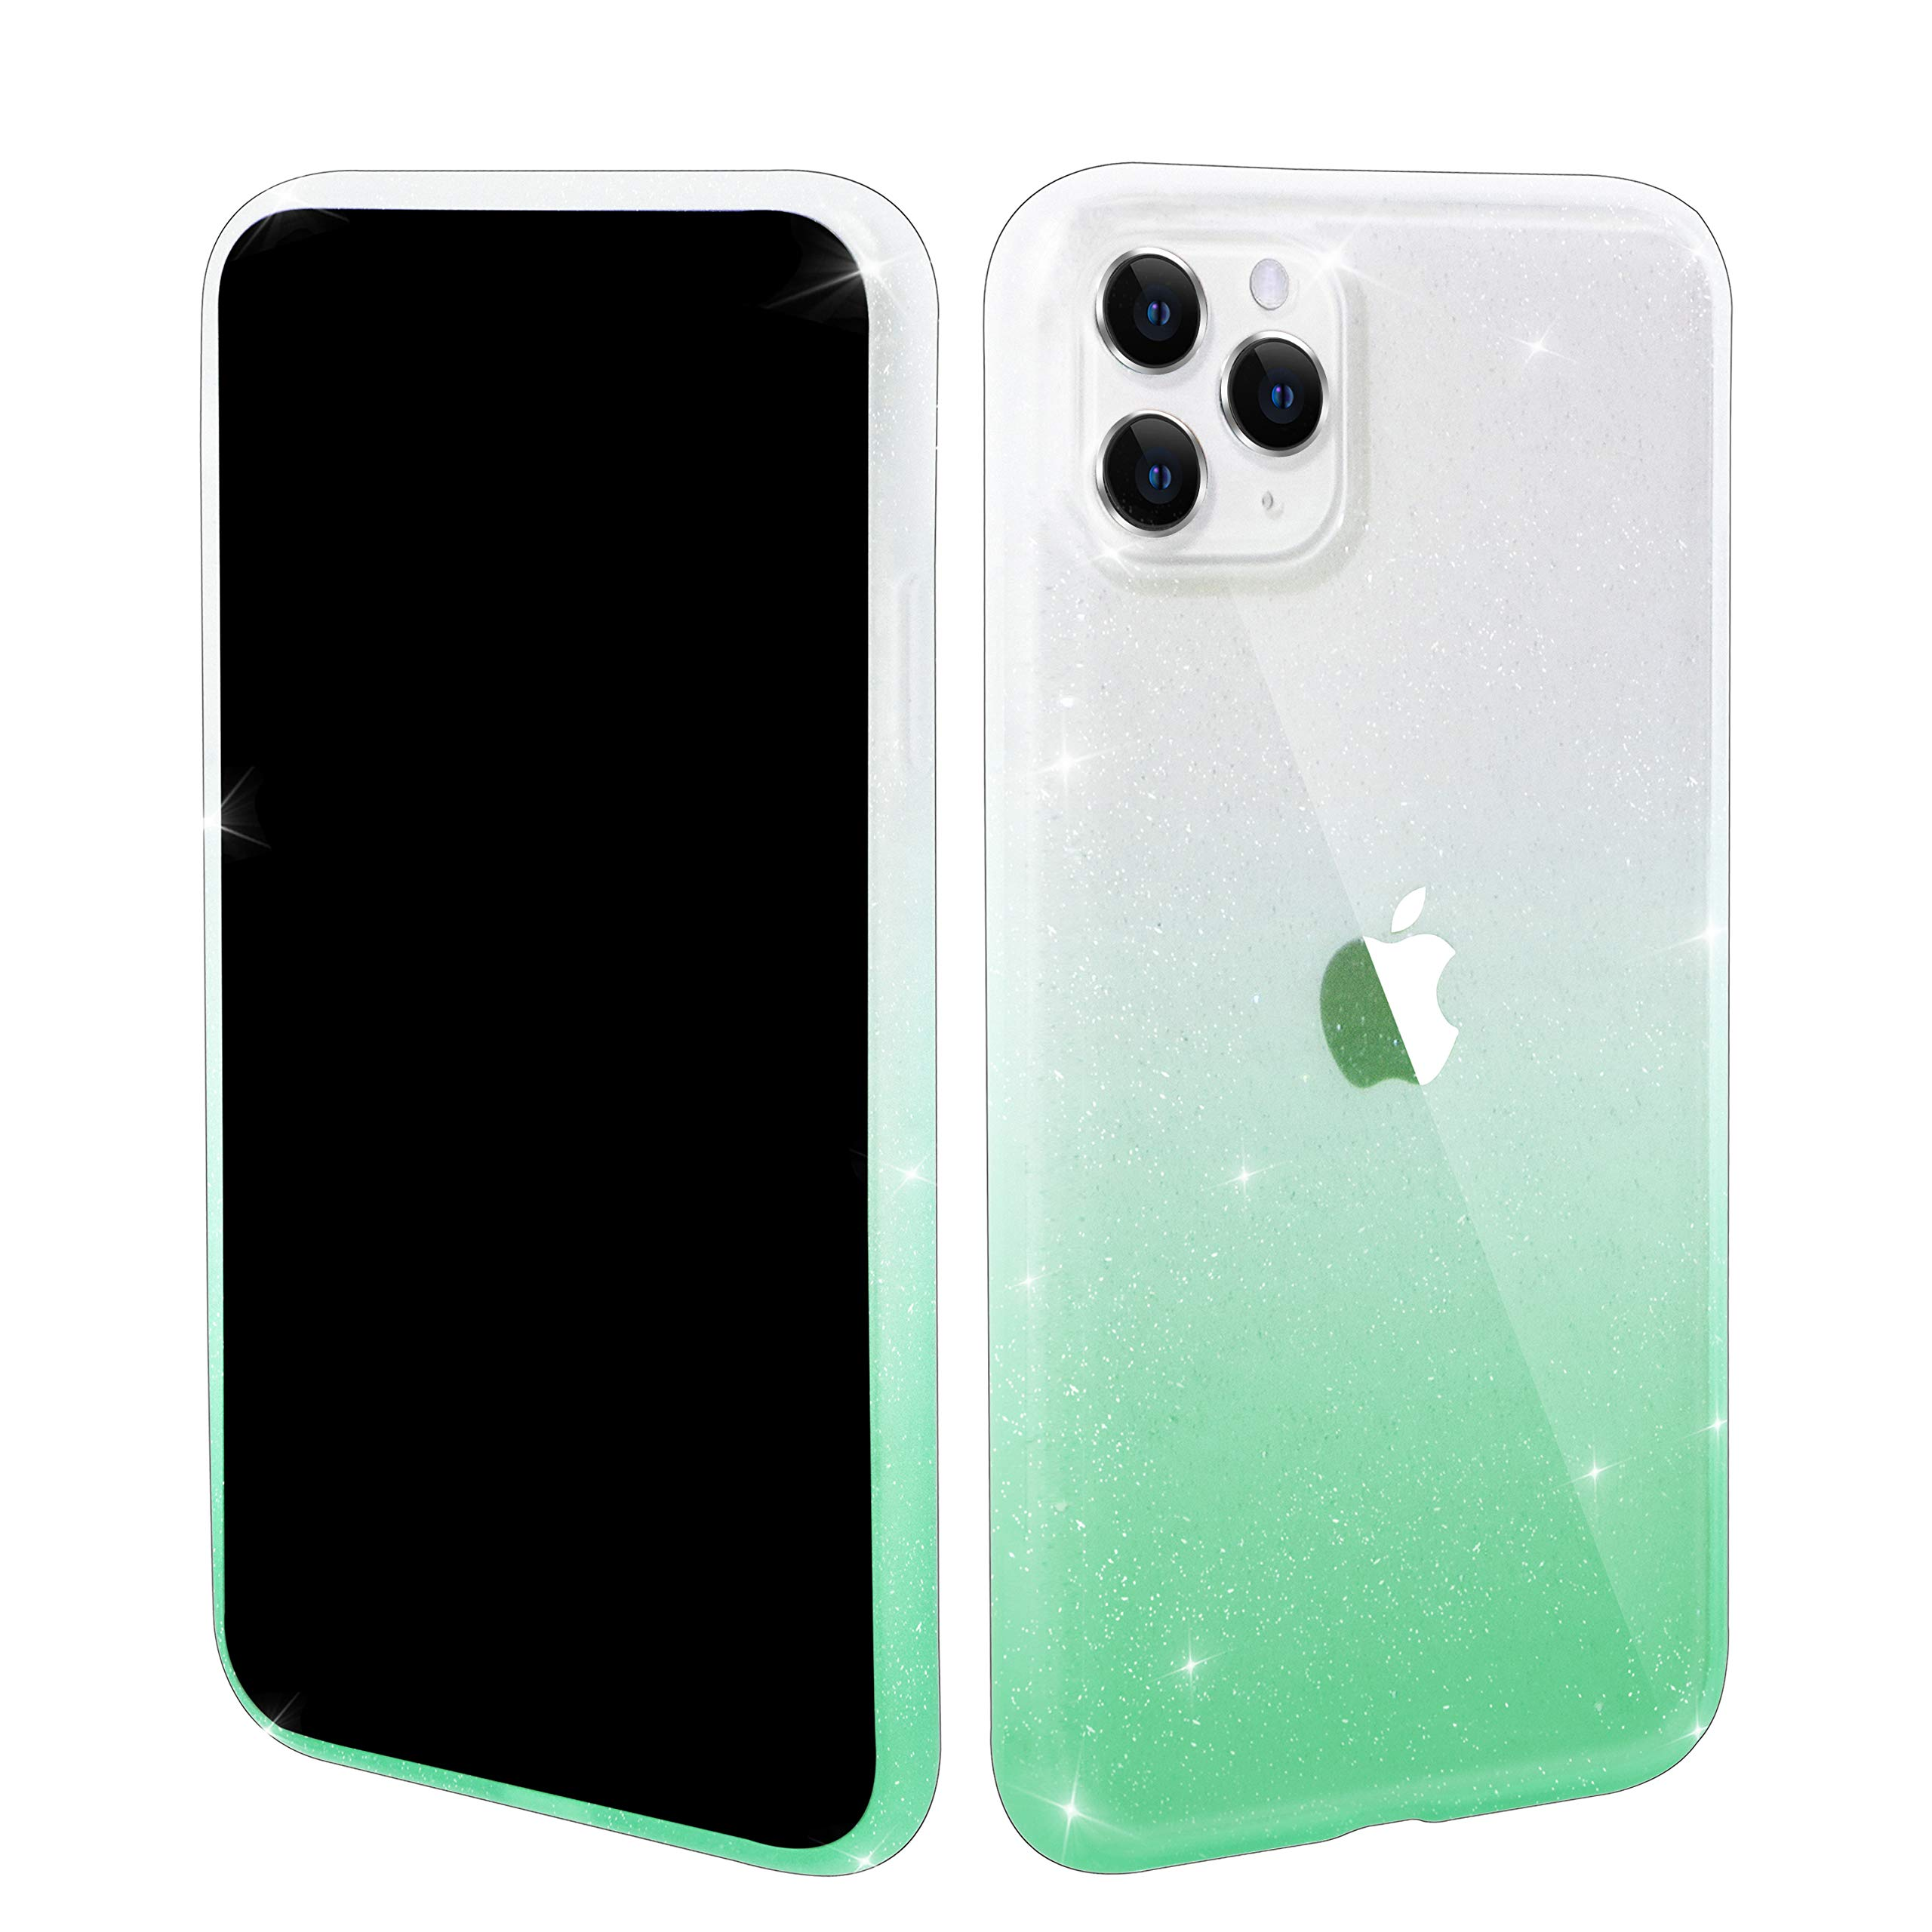 Tzomsze iPhone 11 Pro Max Glitter Case for Girls, Cute Clear Gradient Sparkle Bling Shockproof Case Matte Bumper TPU Soft Rubber Silicone Cover 6.5 inch(Green)